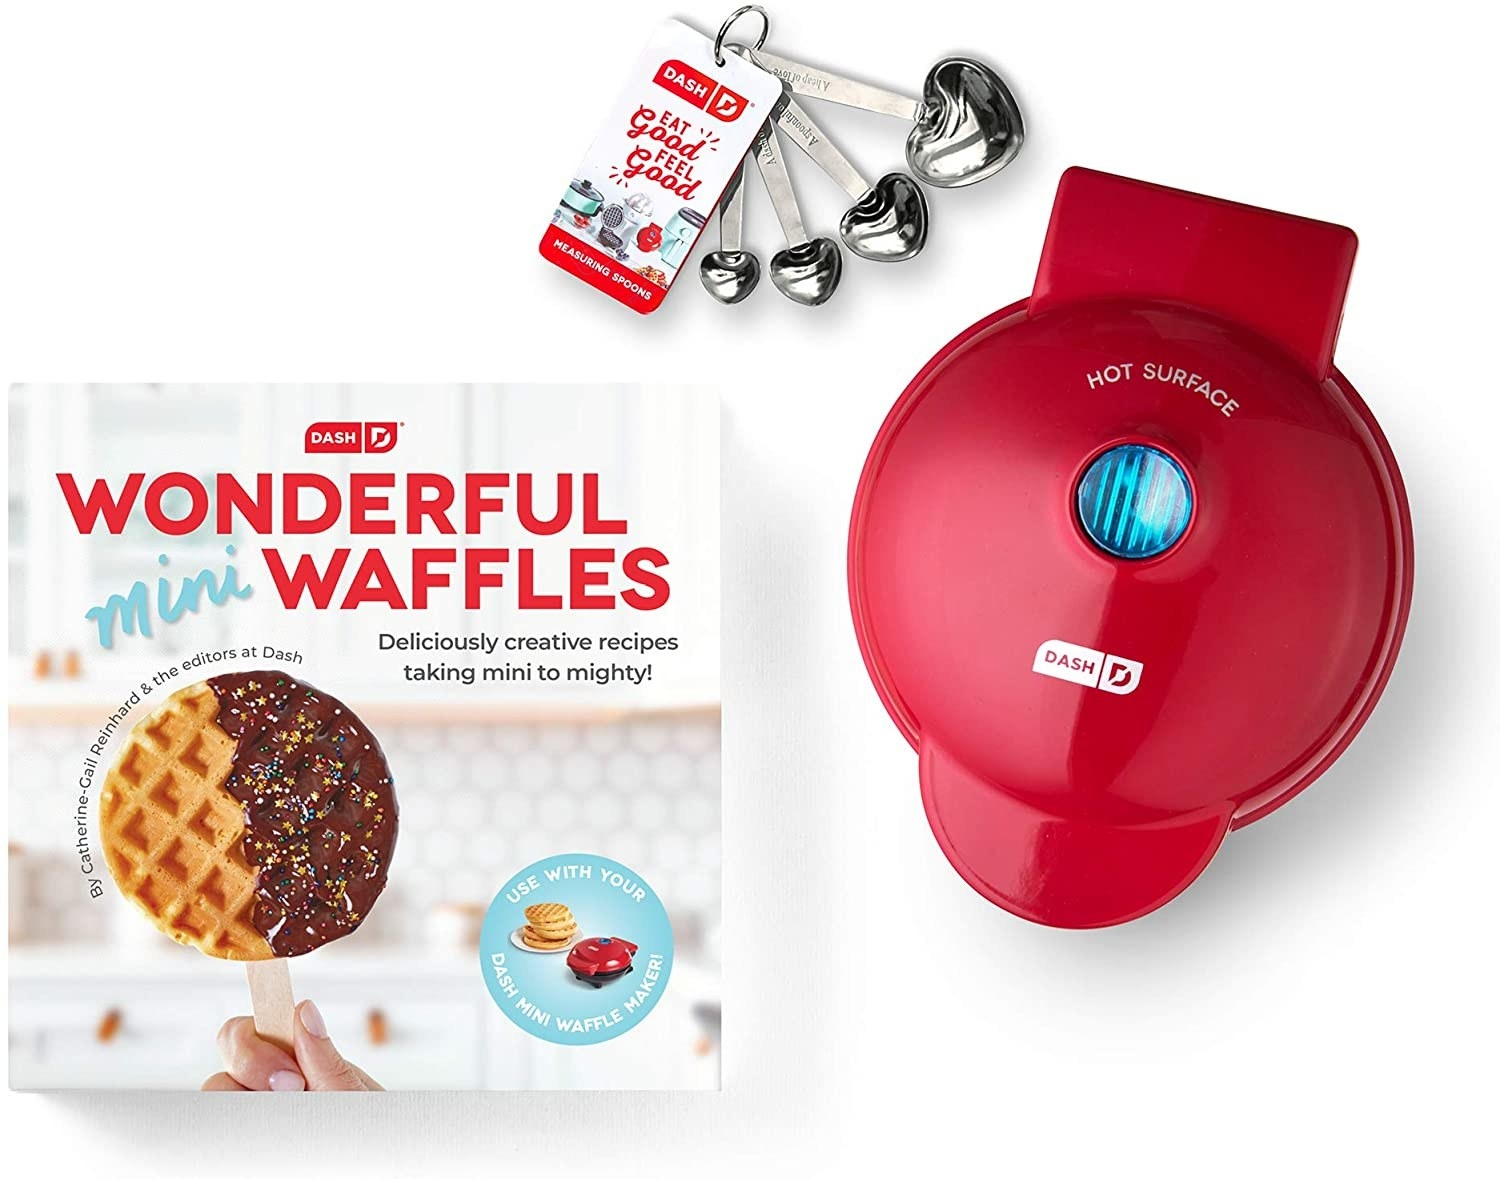 small waffle maker with a waffle cookbook, measuring spoons